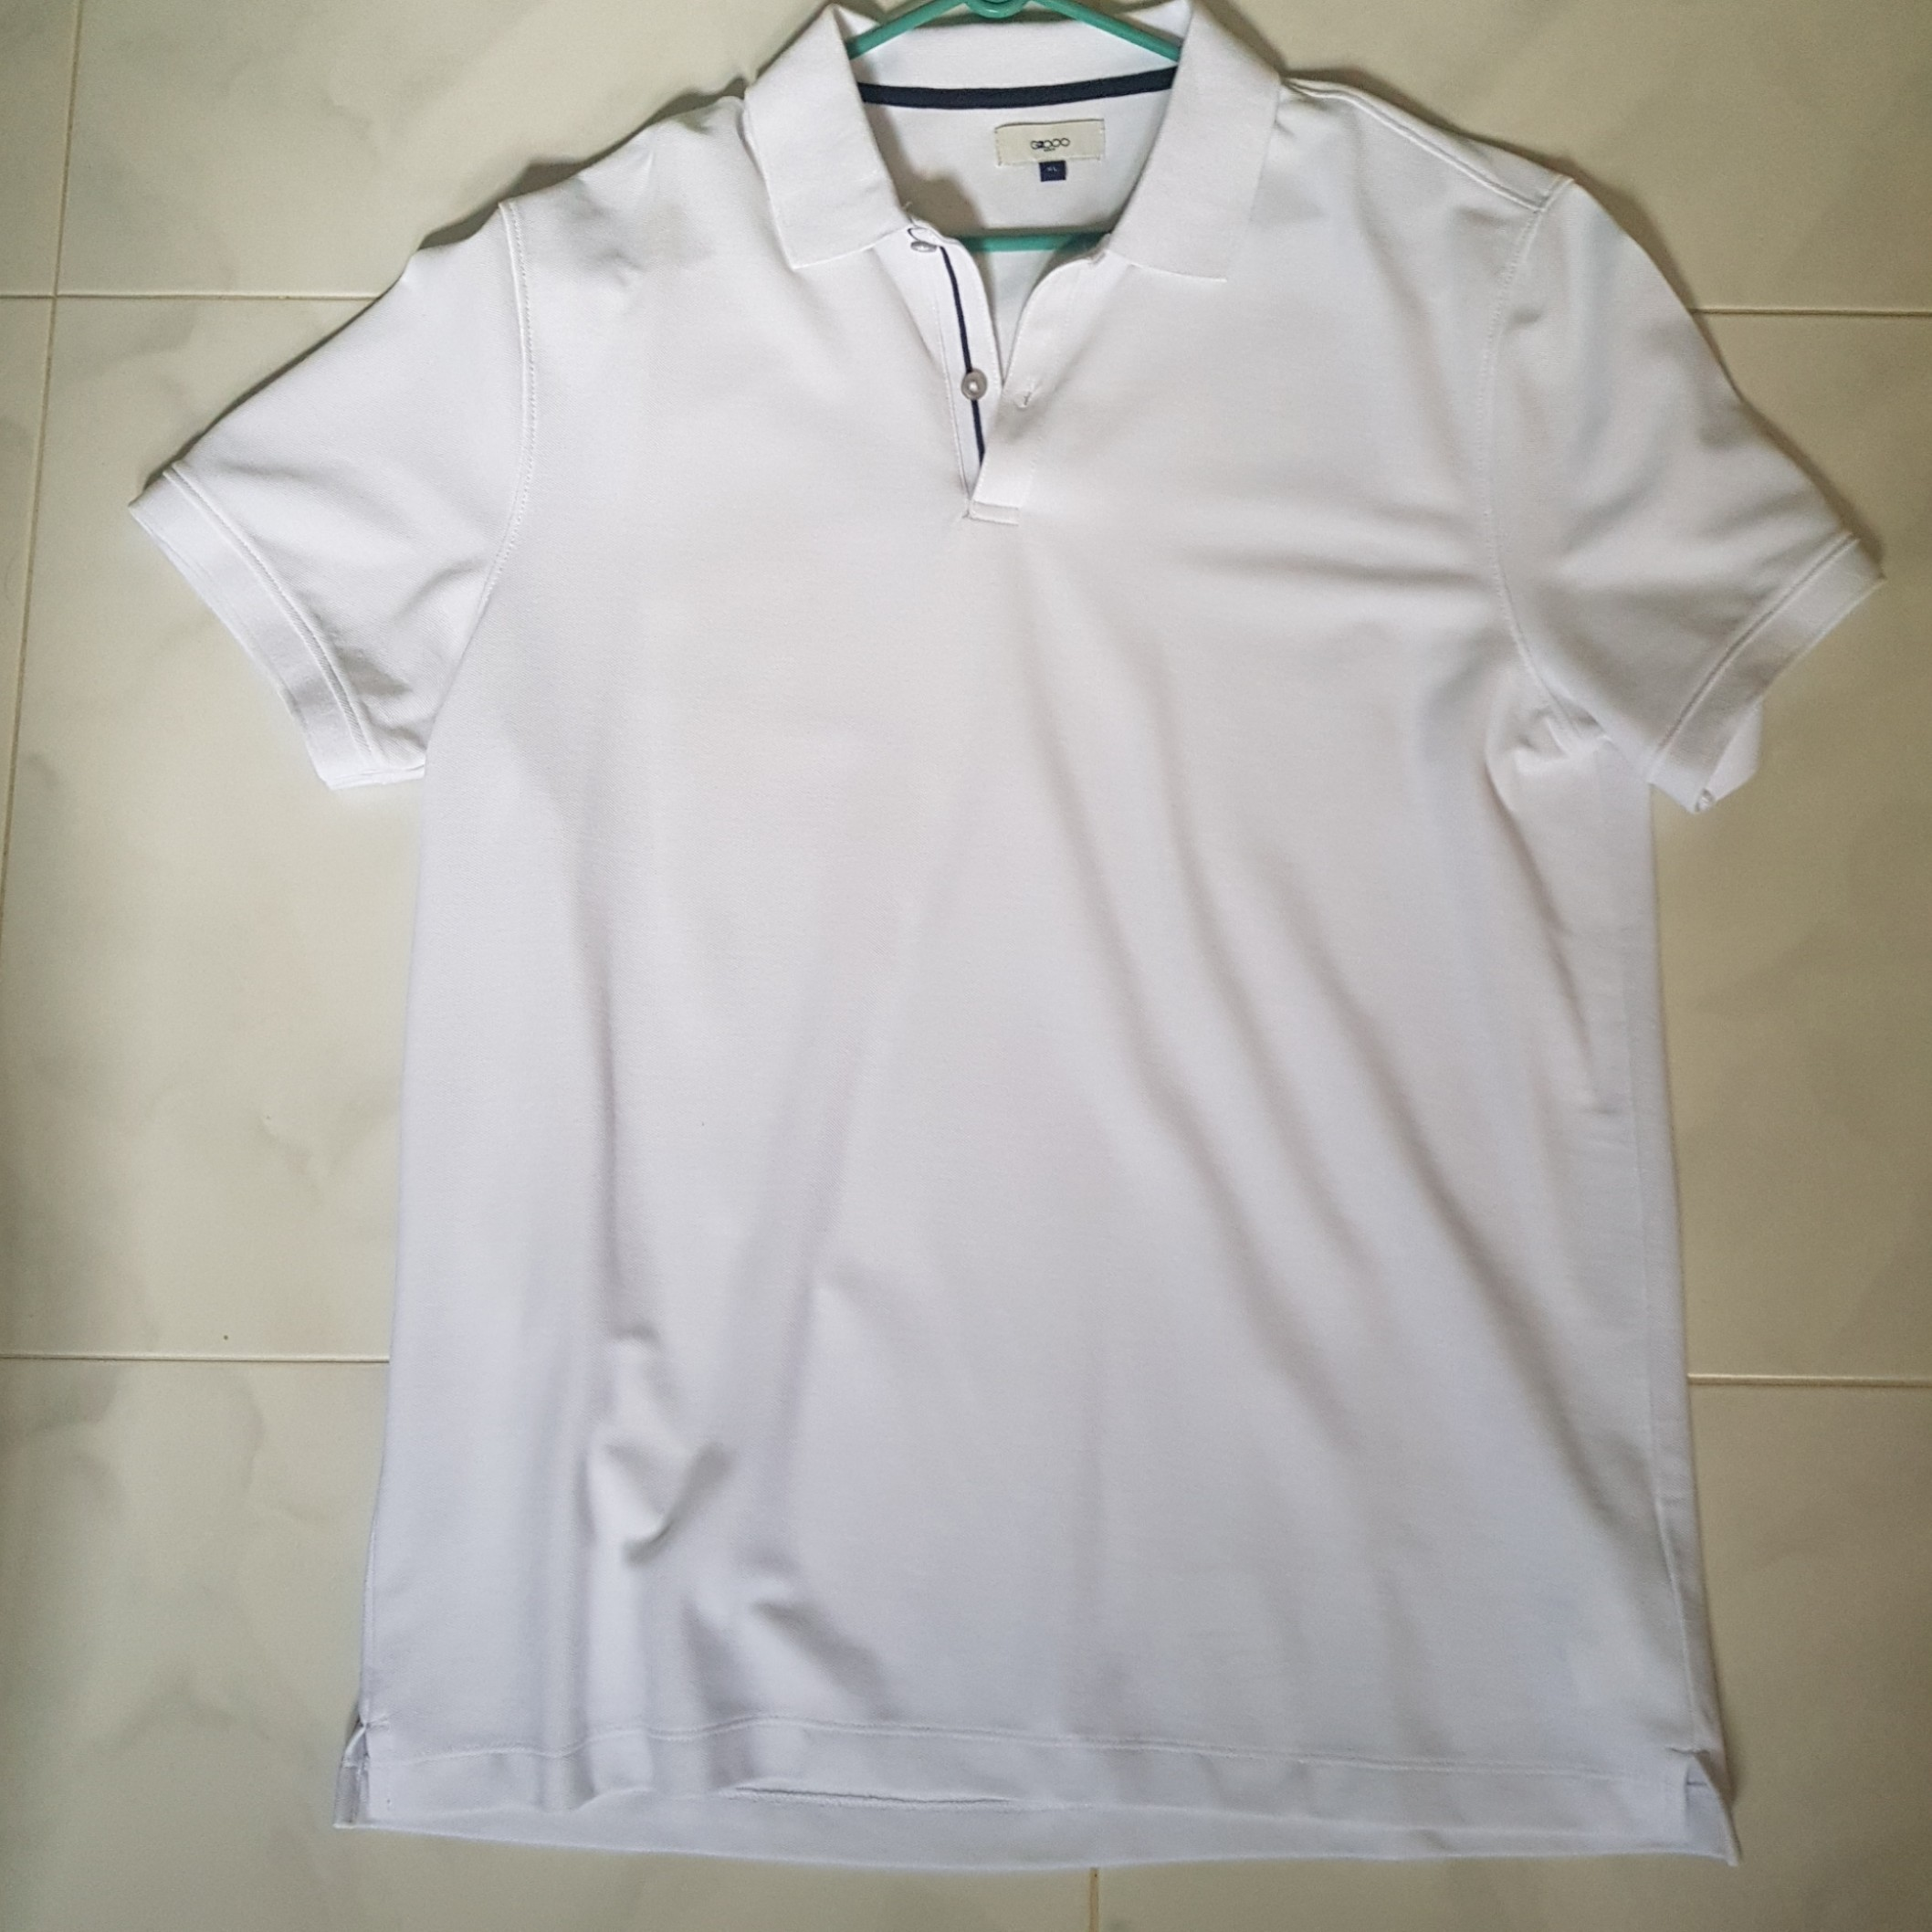 a7b935d2 G2000 polo, Men's Fashion, Clothes, Tops on Carousell